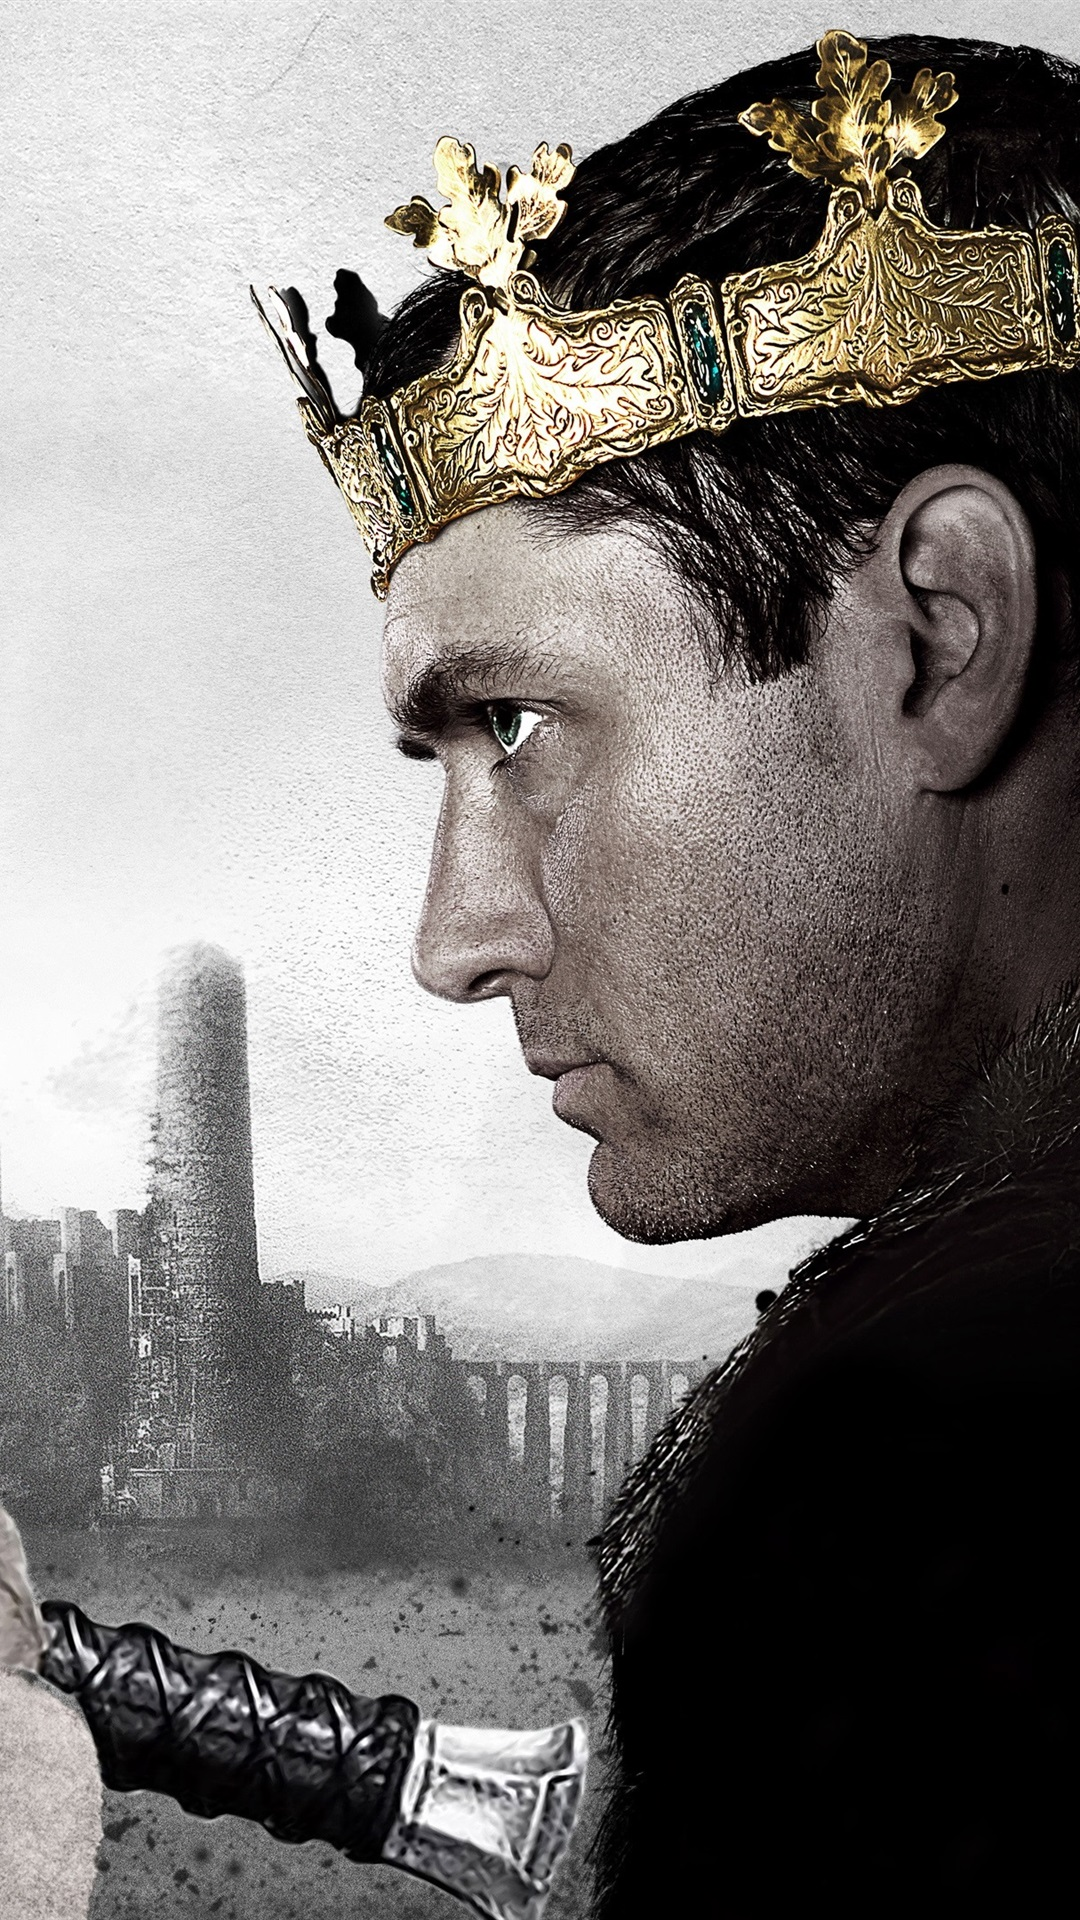 Download This Wallpaper King Arthur Legend Of The Sword Crown